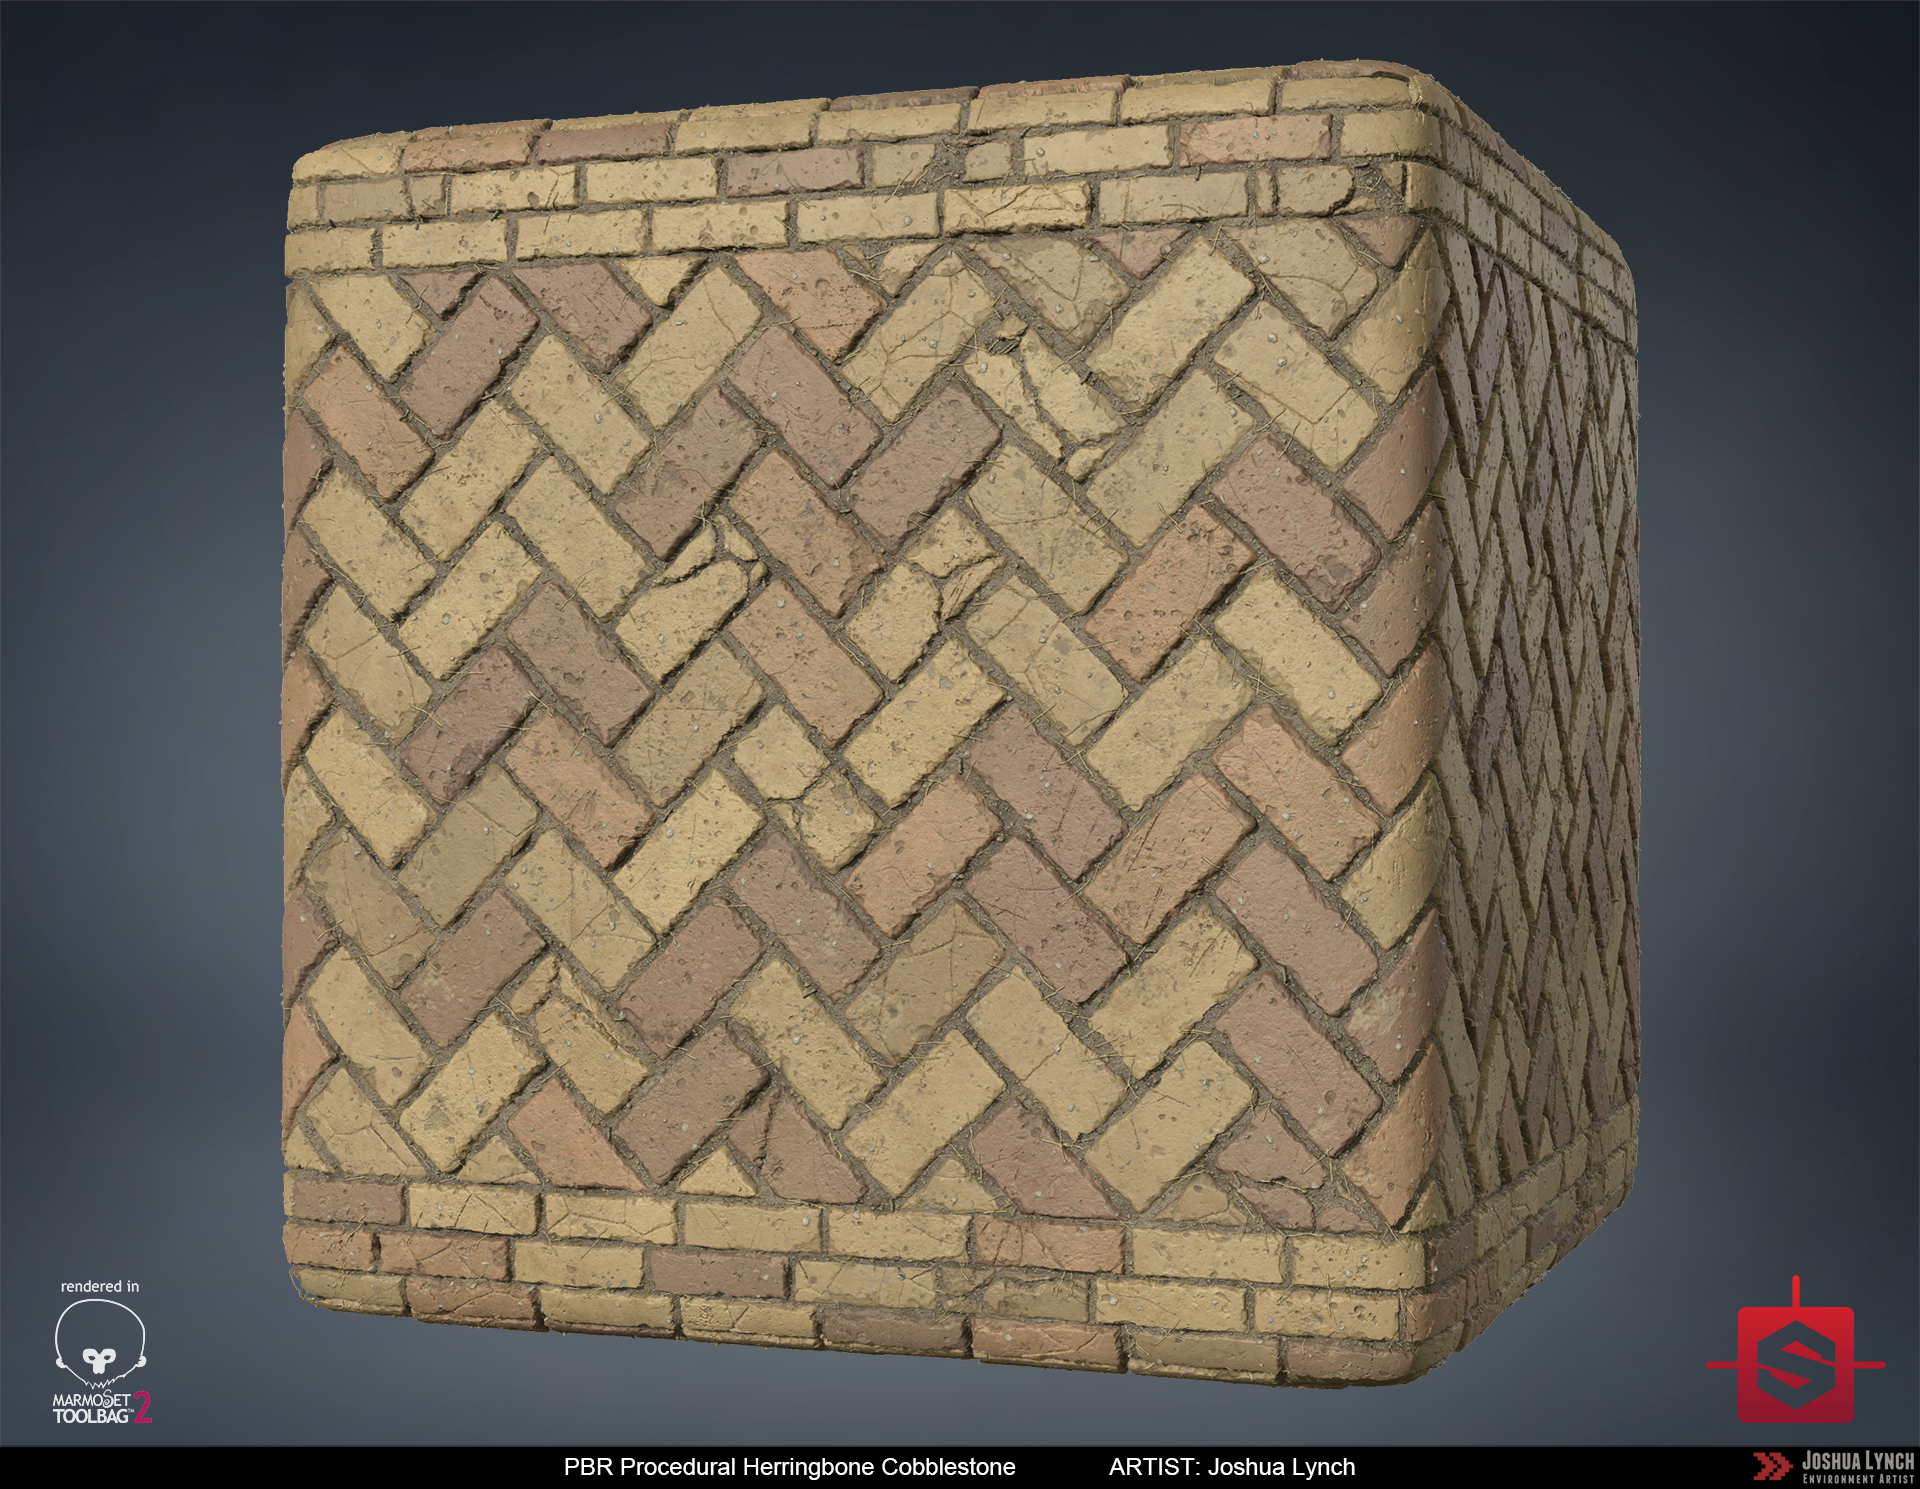 Floor_Cobblestone_Herringbone_Cube_Rev_03_Layout_Comp_Josh_Lynch.png